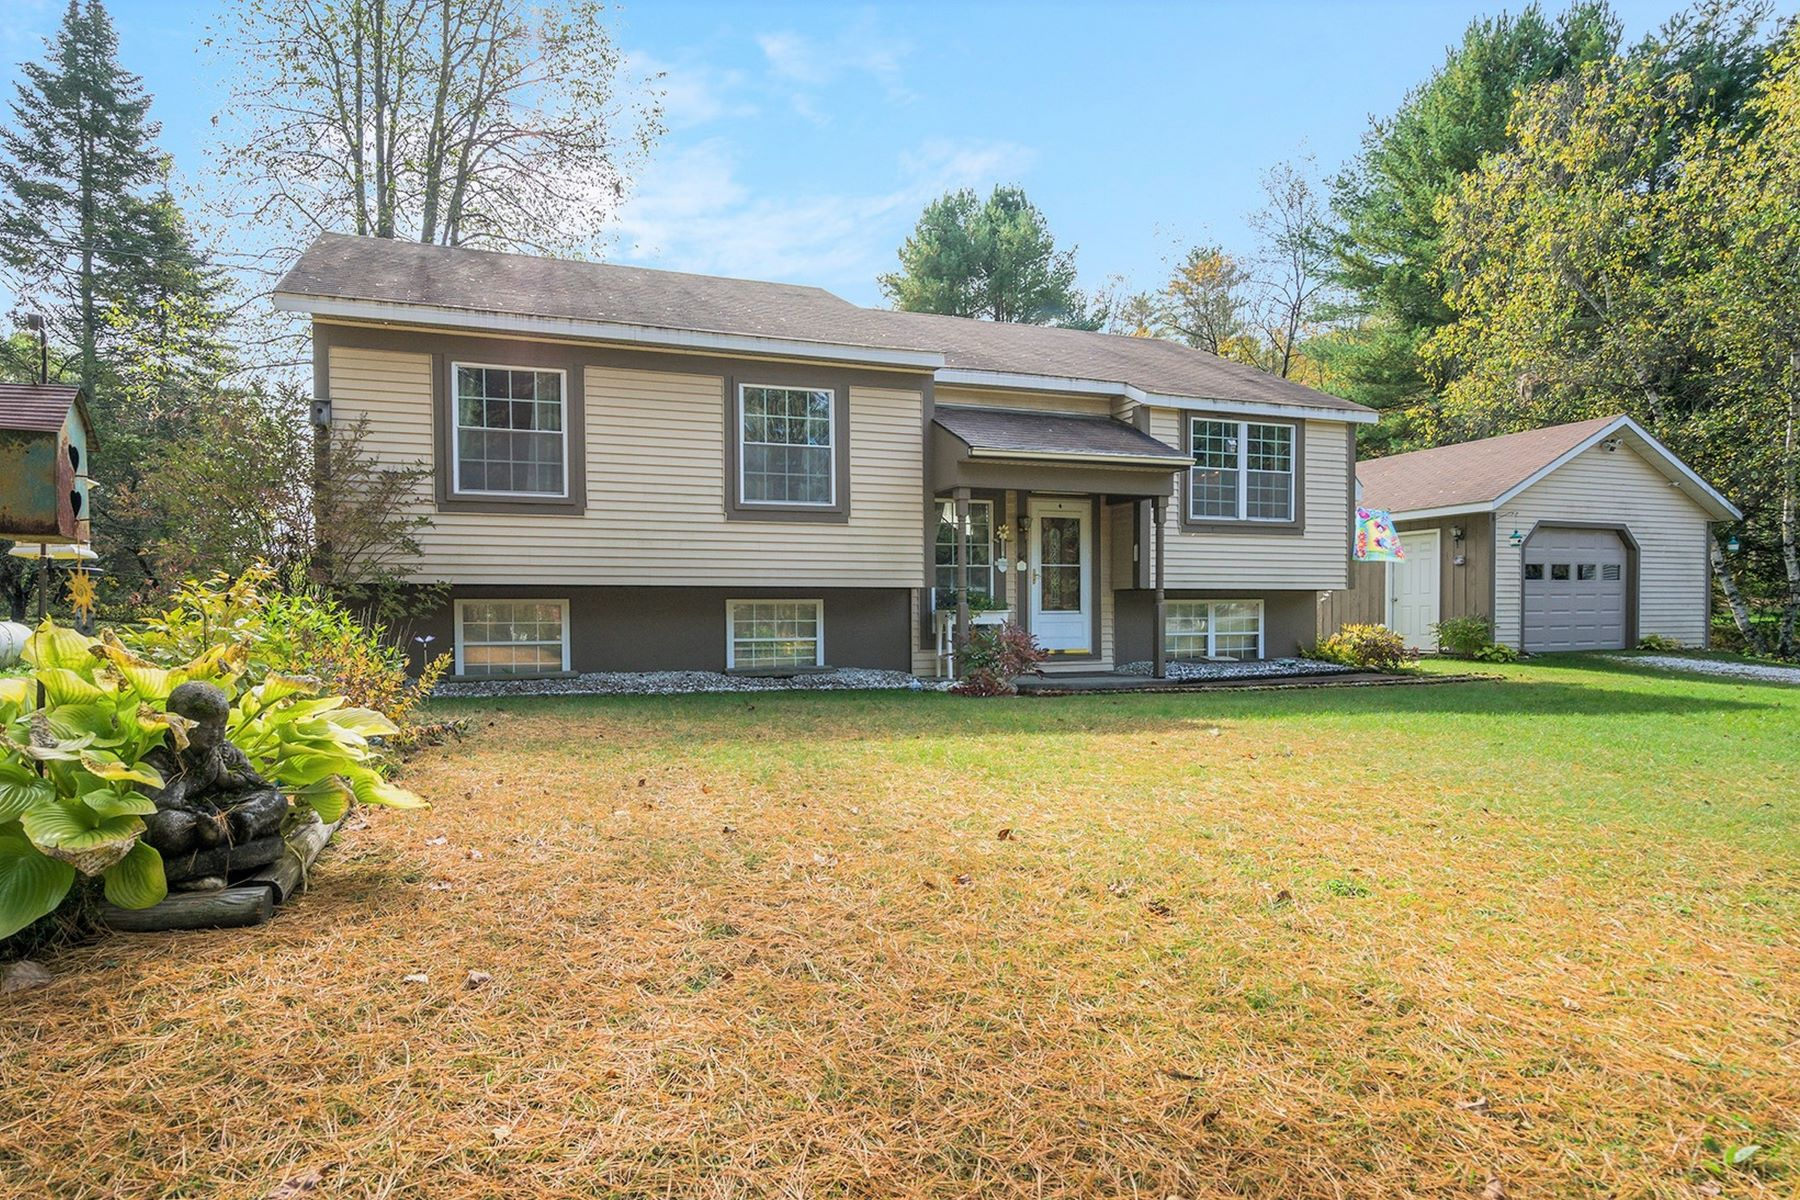 Single Family Homes for Sale at Three Bedroom Split Level Ranch in Bethel 34 Bicentennial Ln Bethel, Vermont 05032 United States